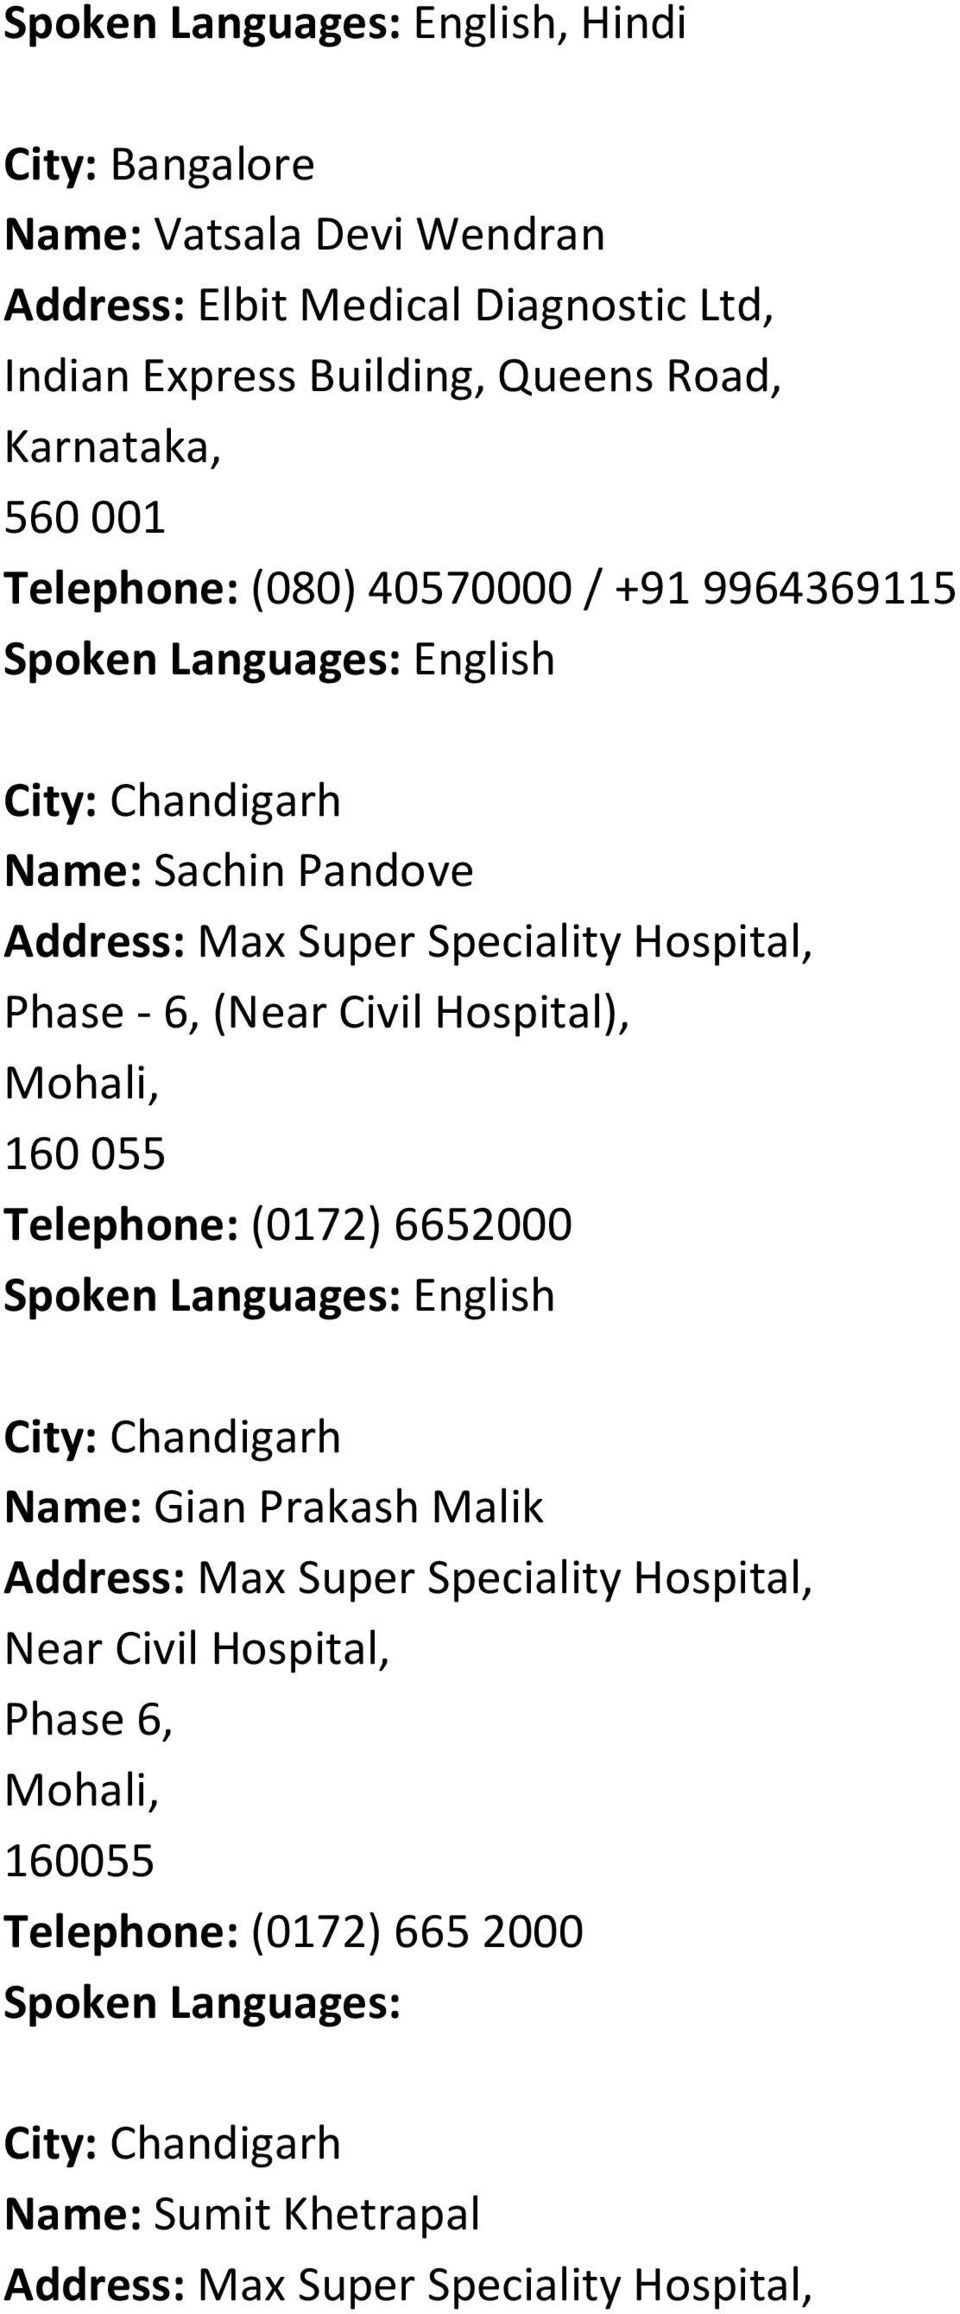 Civil Hospital), Mohali, 160 055 Telephone: (0172) 6652000 English City: Chandigarh Name: Gian Prakash Malik Address: Max Super Speciality Hospital,